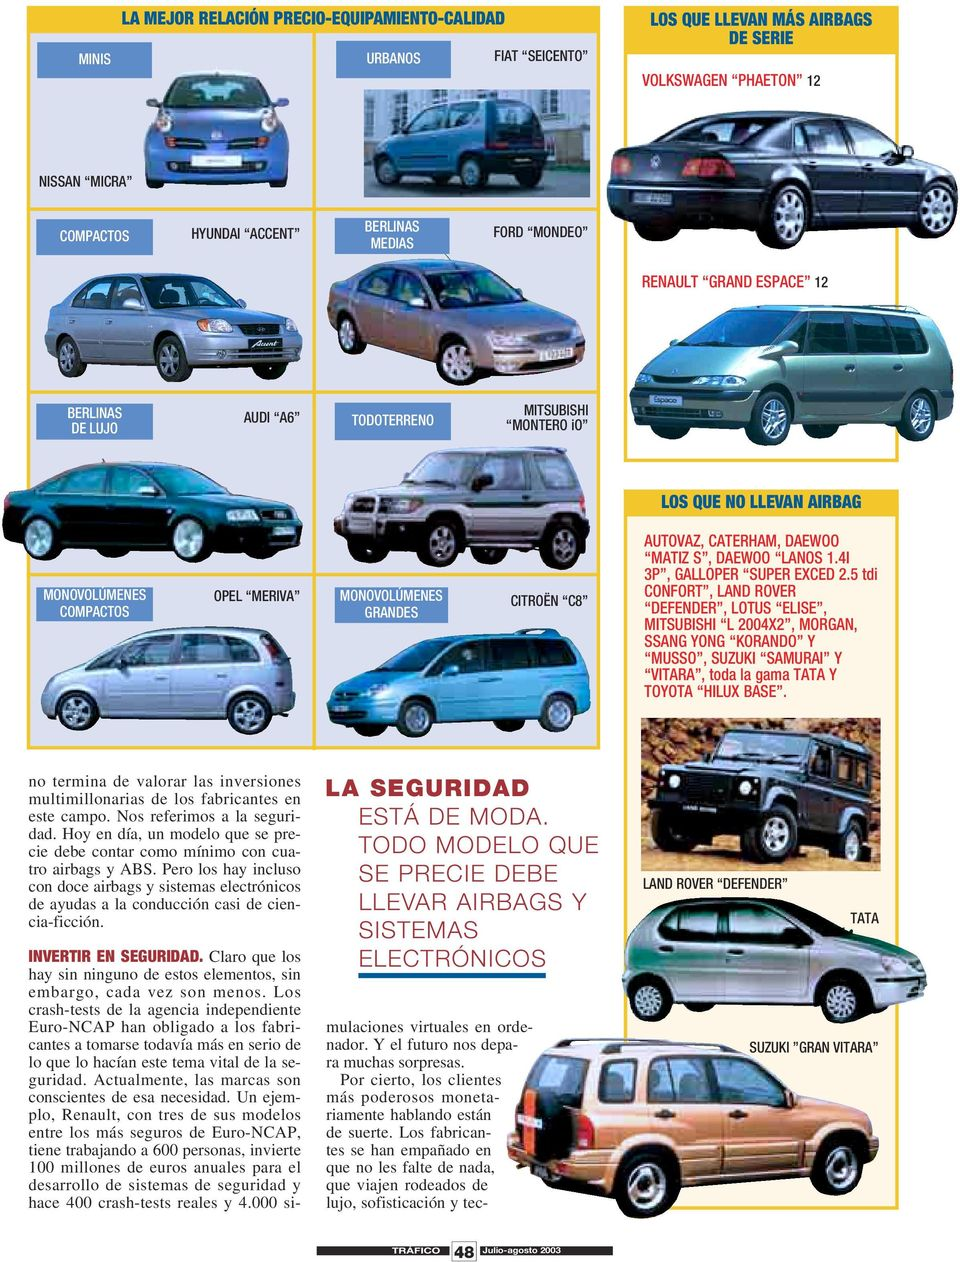 DAEWOO LANOS 1.4I 3P, GALLOPER SUPER EXCED 2.